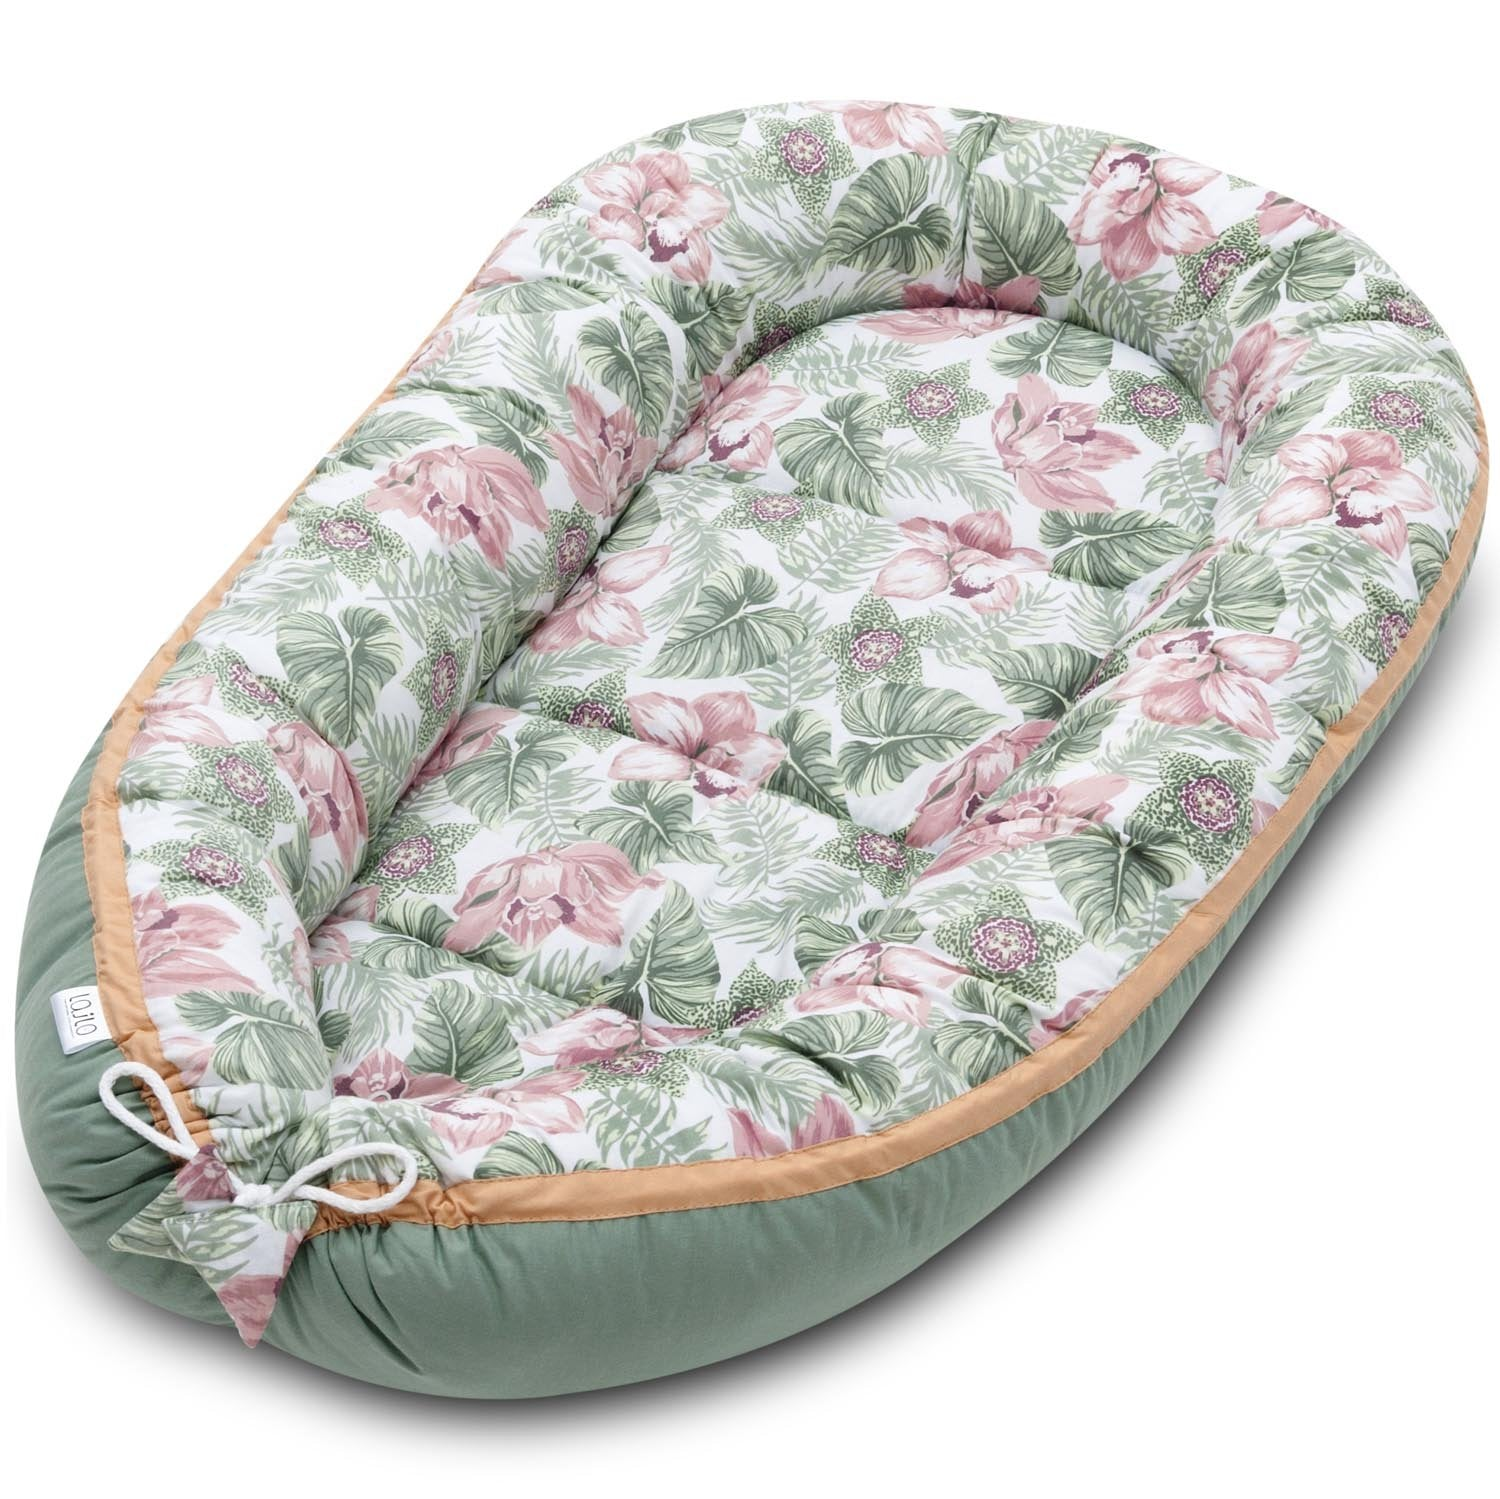 New,reversible  baby nest,pod,baby blanket,baby sleep bag